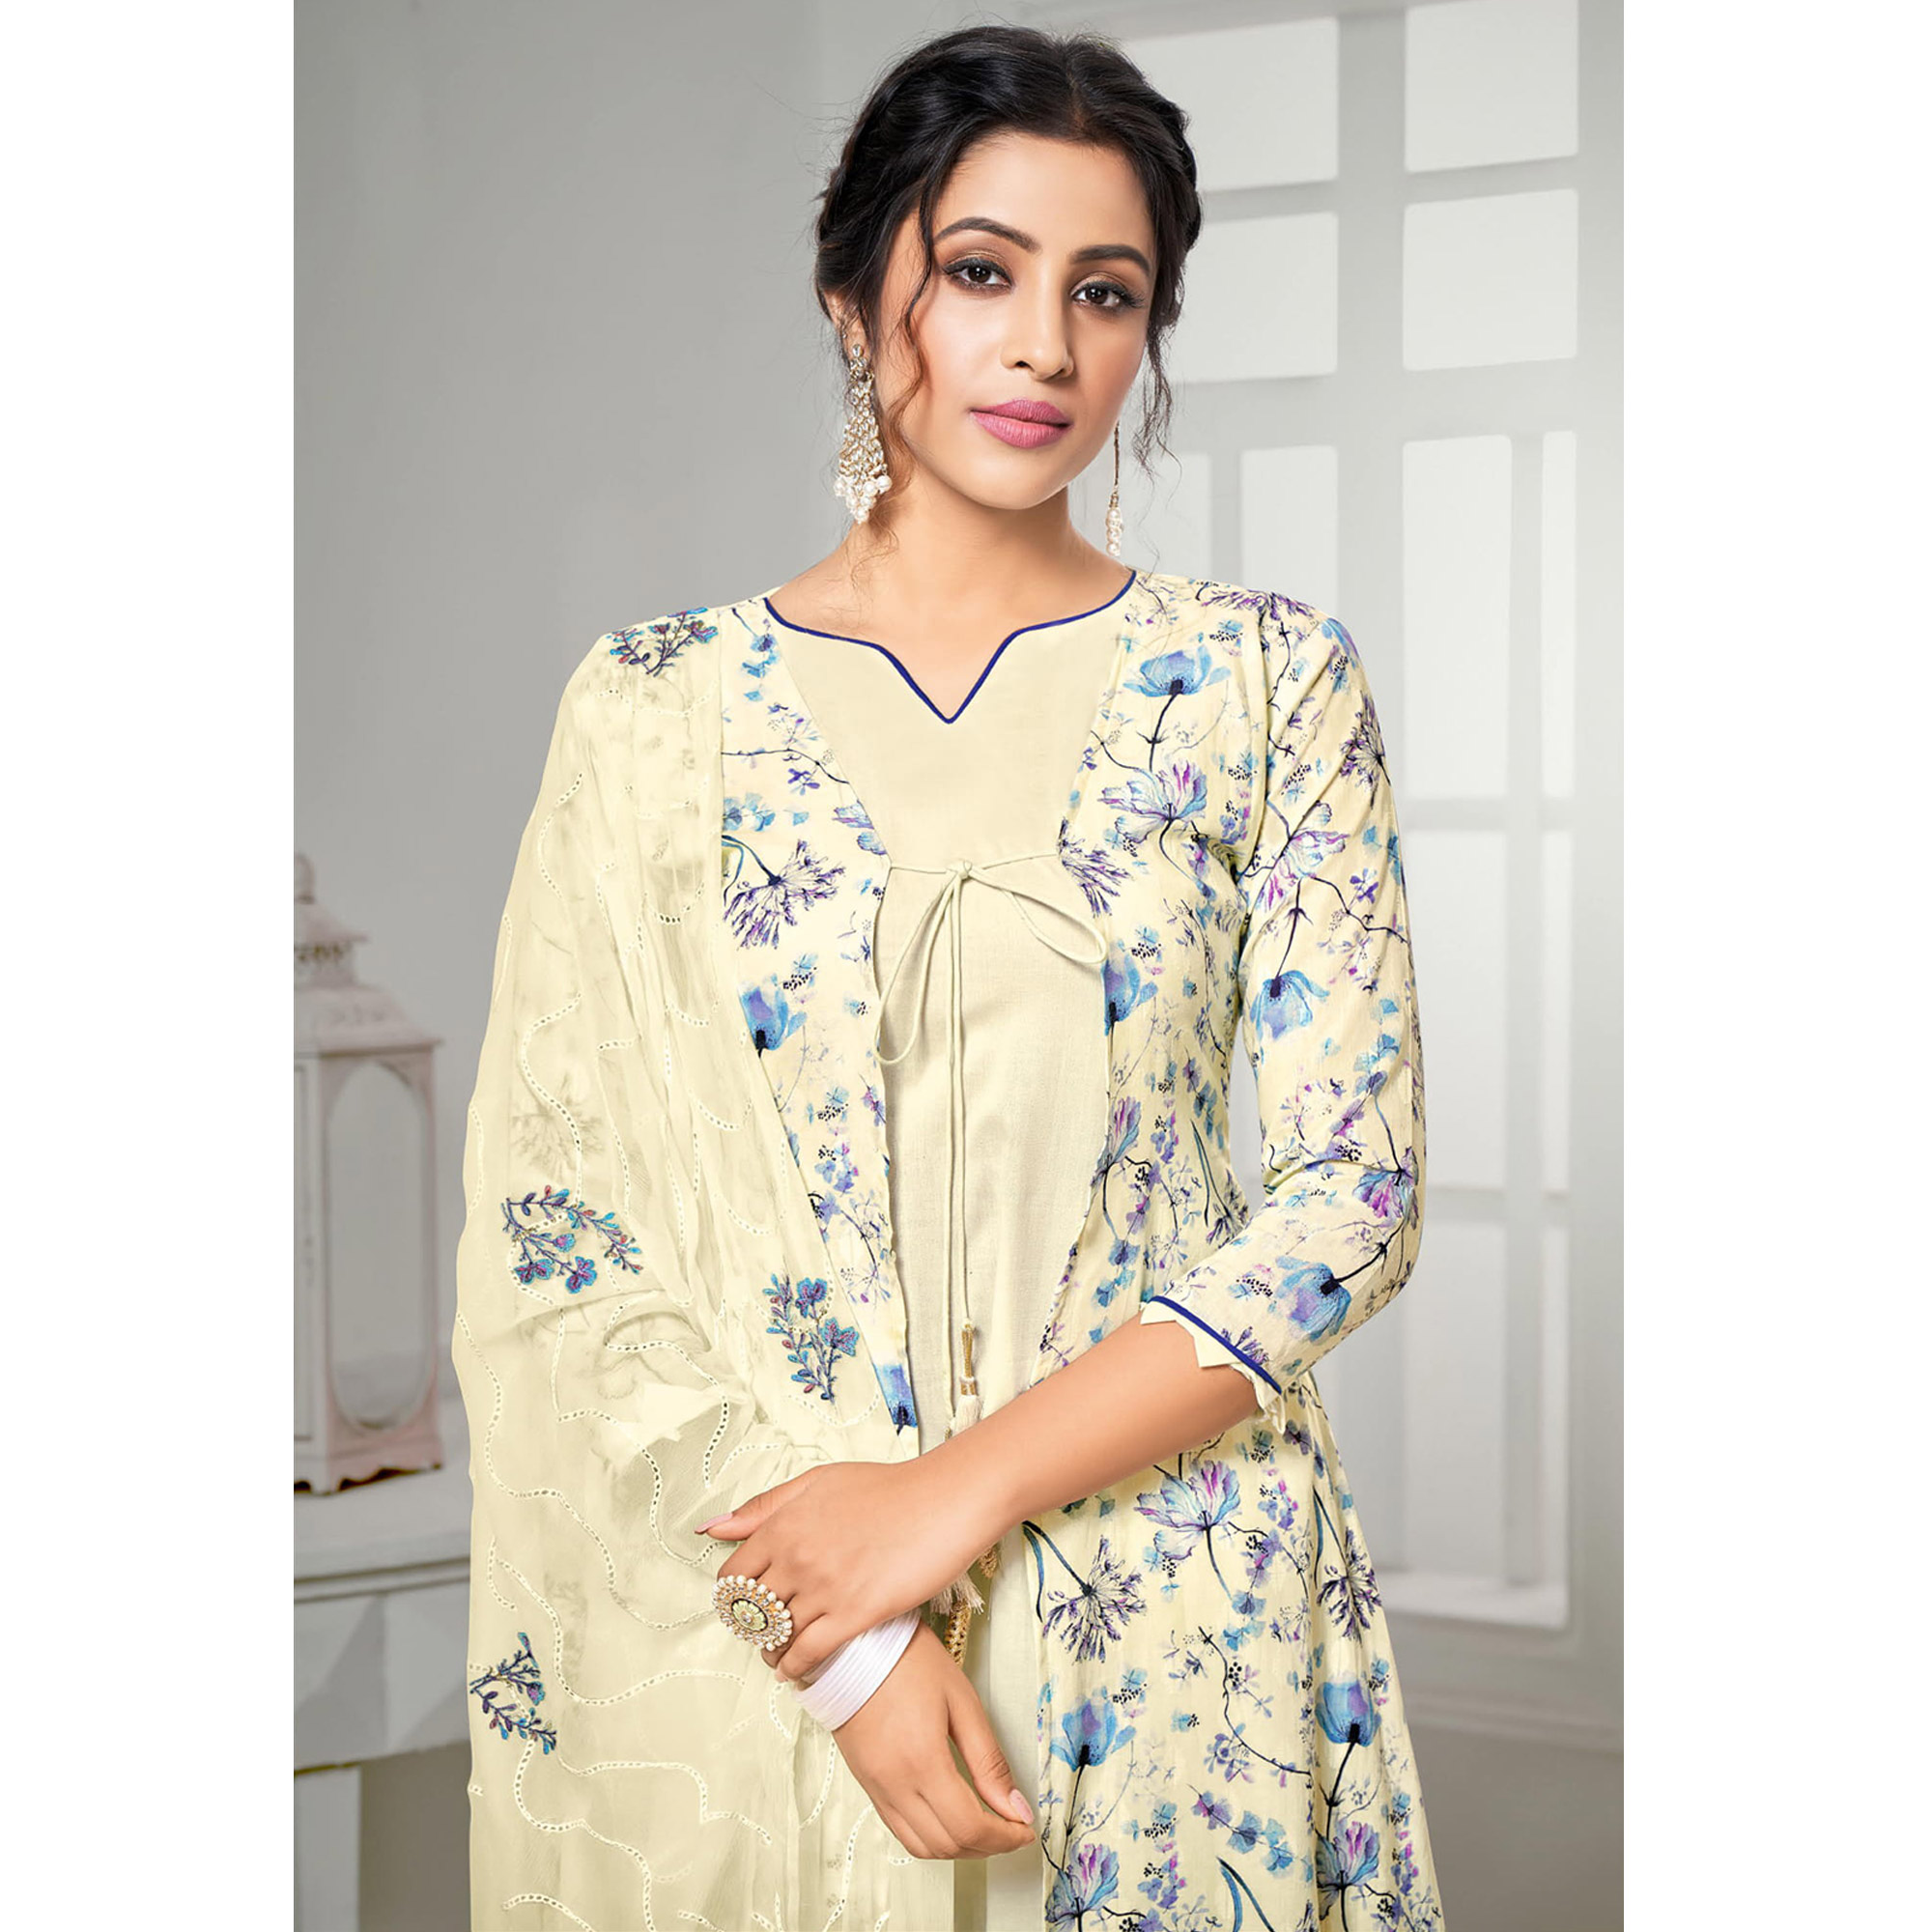 Intricate Cream Colored Partywear Digital Printed Pure Jam Cotton Palazzo Suit